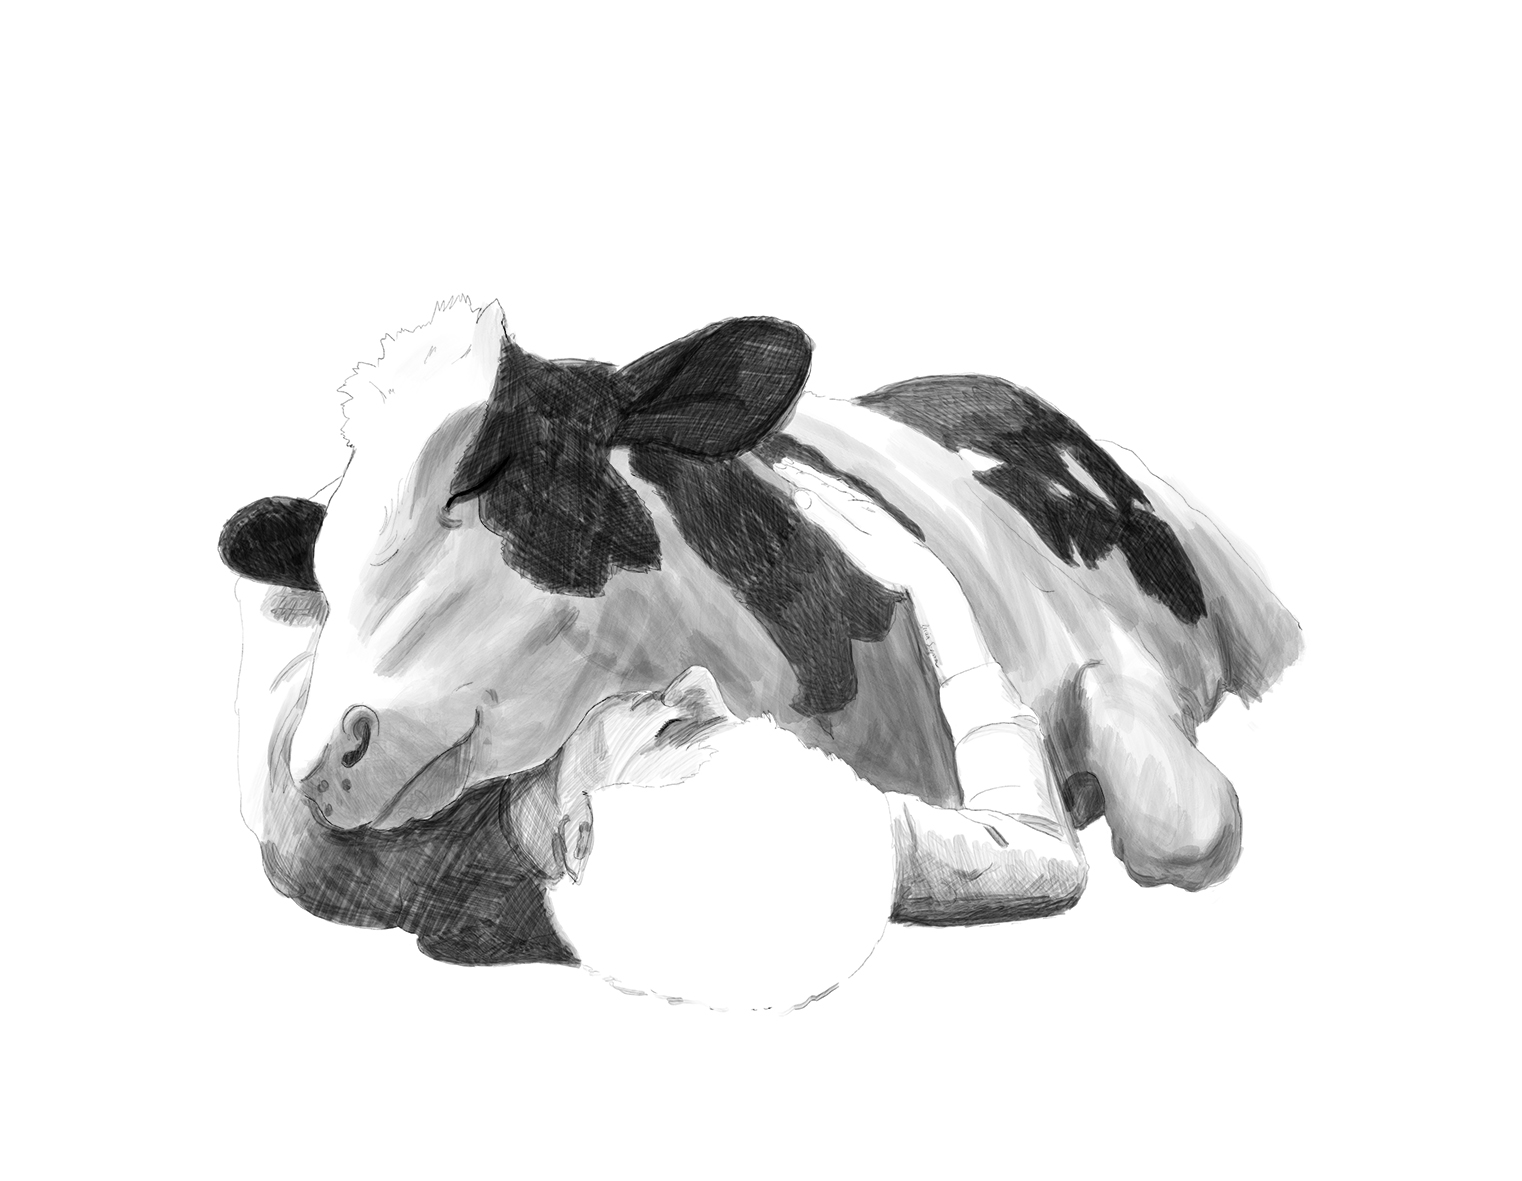 Vegan illustration of a person and a cow relaxed on the floor with a smile. Animal portrait in black and white.